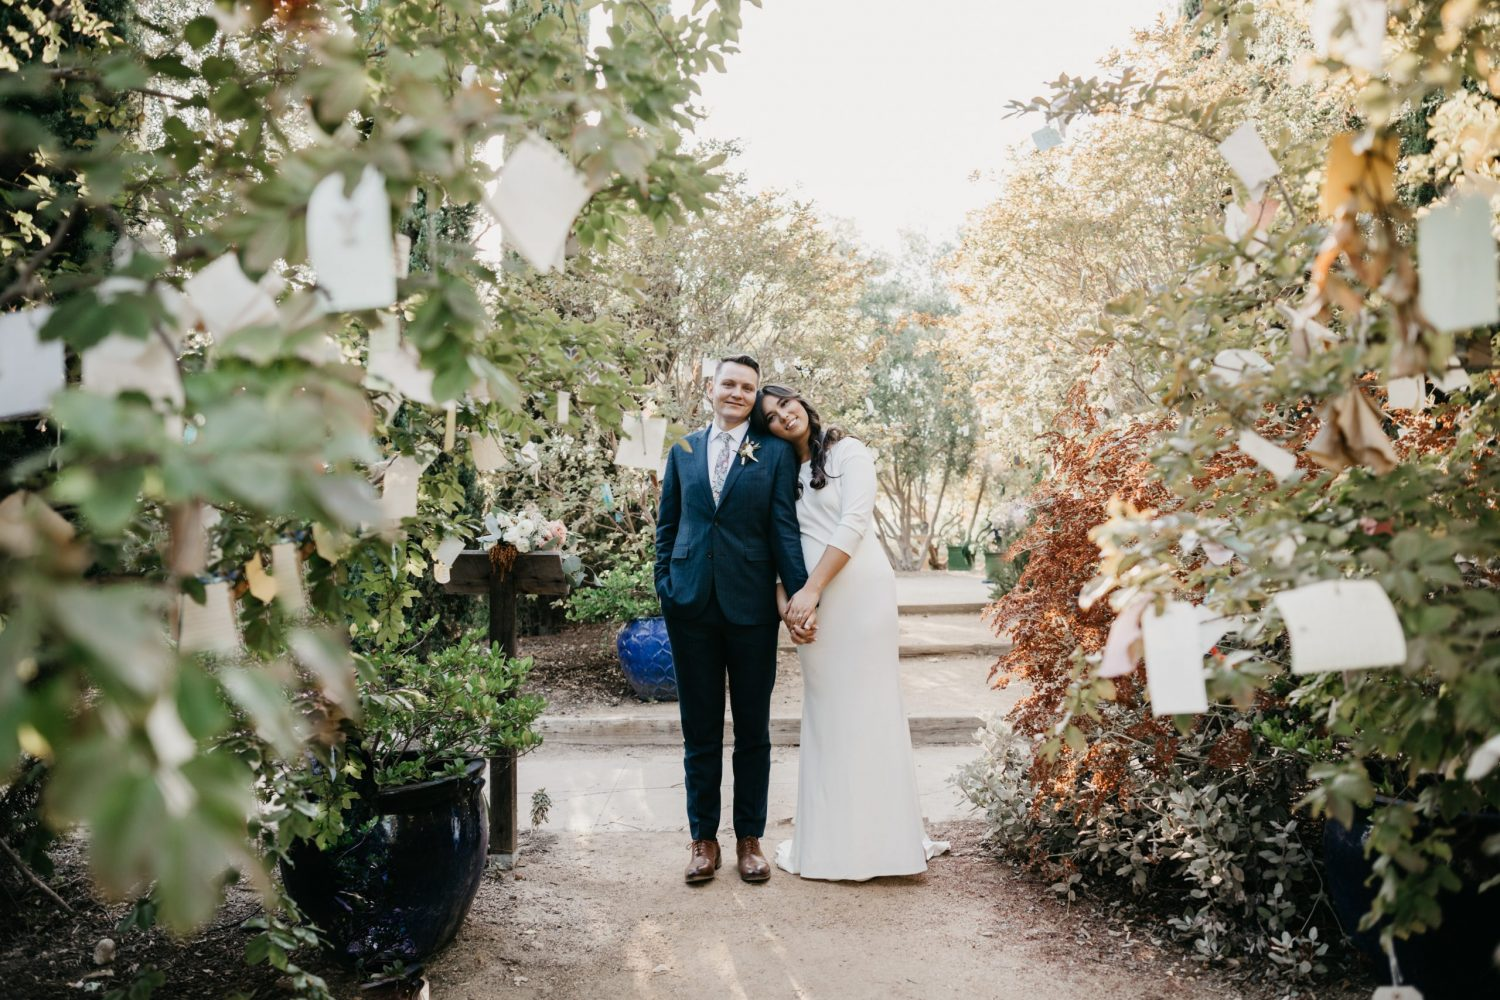 Arlington Garden Bridals, image by Fatima Elreda Photo